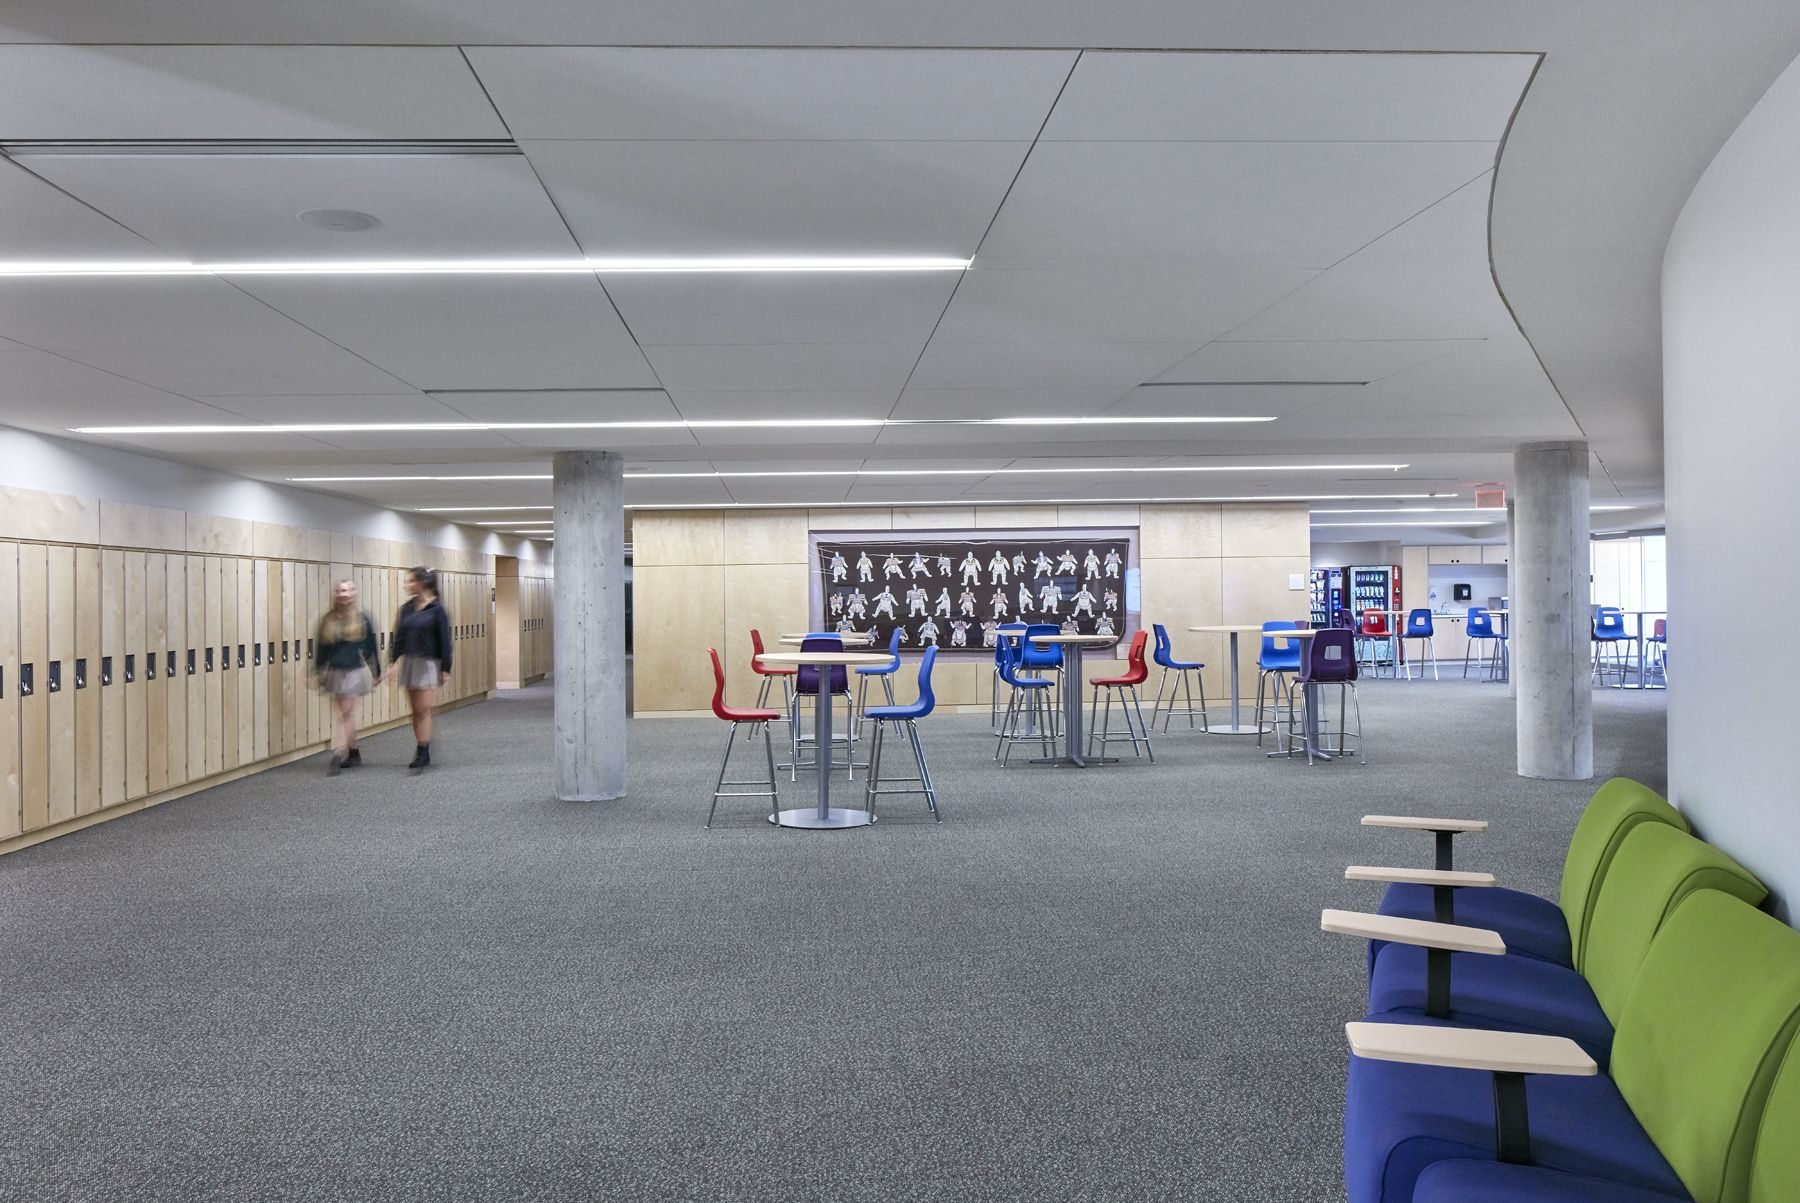 Our second-floor social space provides lots of space for students to gather, including cruiser tables, glass-walled breakout rooms, computer bars and soft seating.